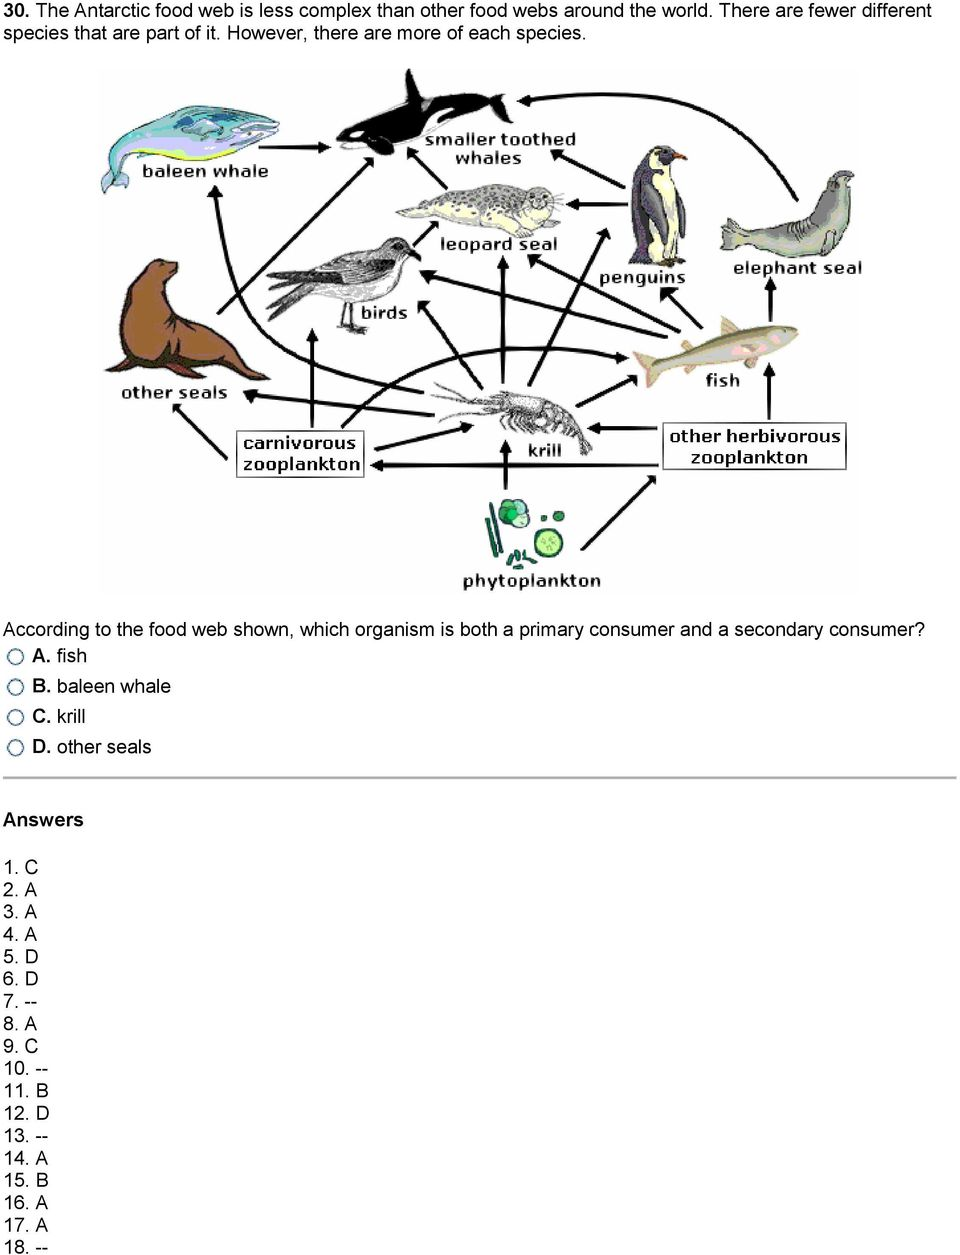 According to the food web shown, which organism is both a primary consumer and a secondary consumer? A.